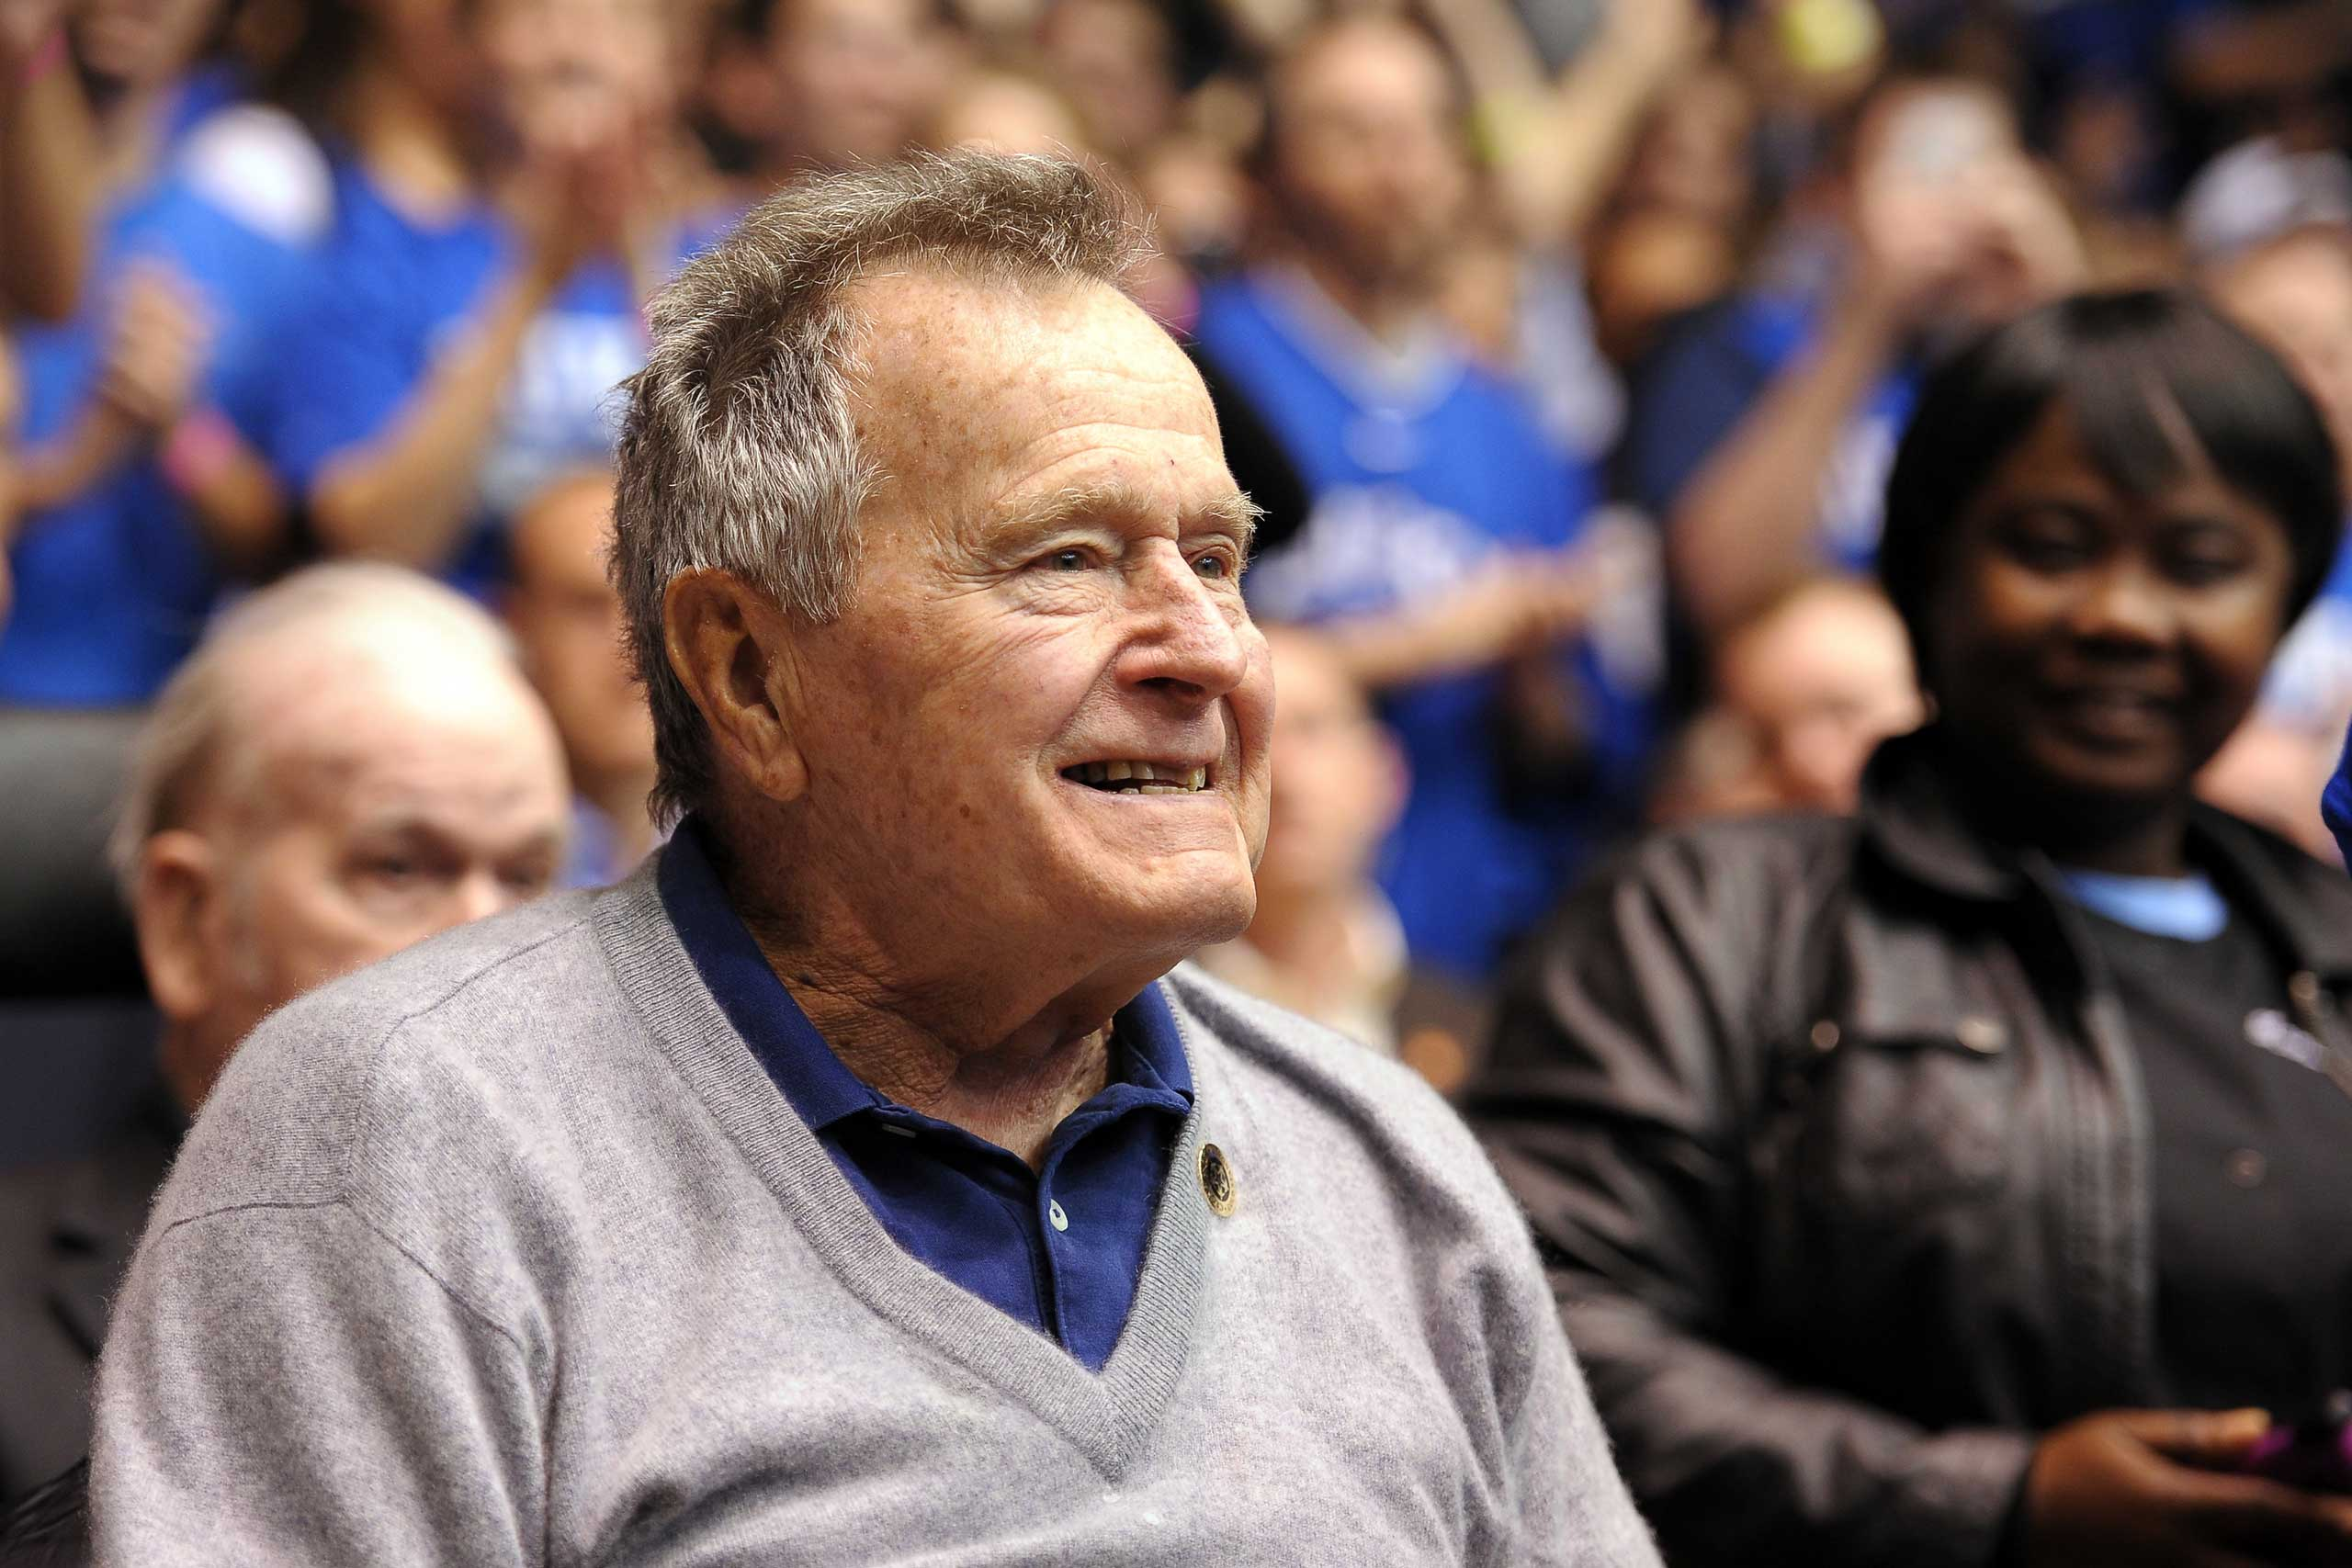 Former U.S. President George H.W. Bush looks on during a game between the North Carolina State Wolfpack and the Duke Blue Devils at Cameron Indoor Stadium in Durham, N.C., on Jan. 18, 2014